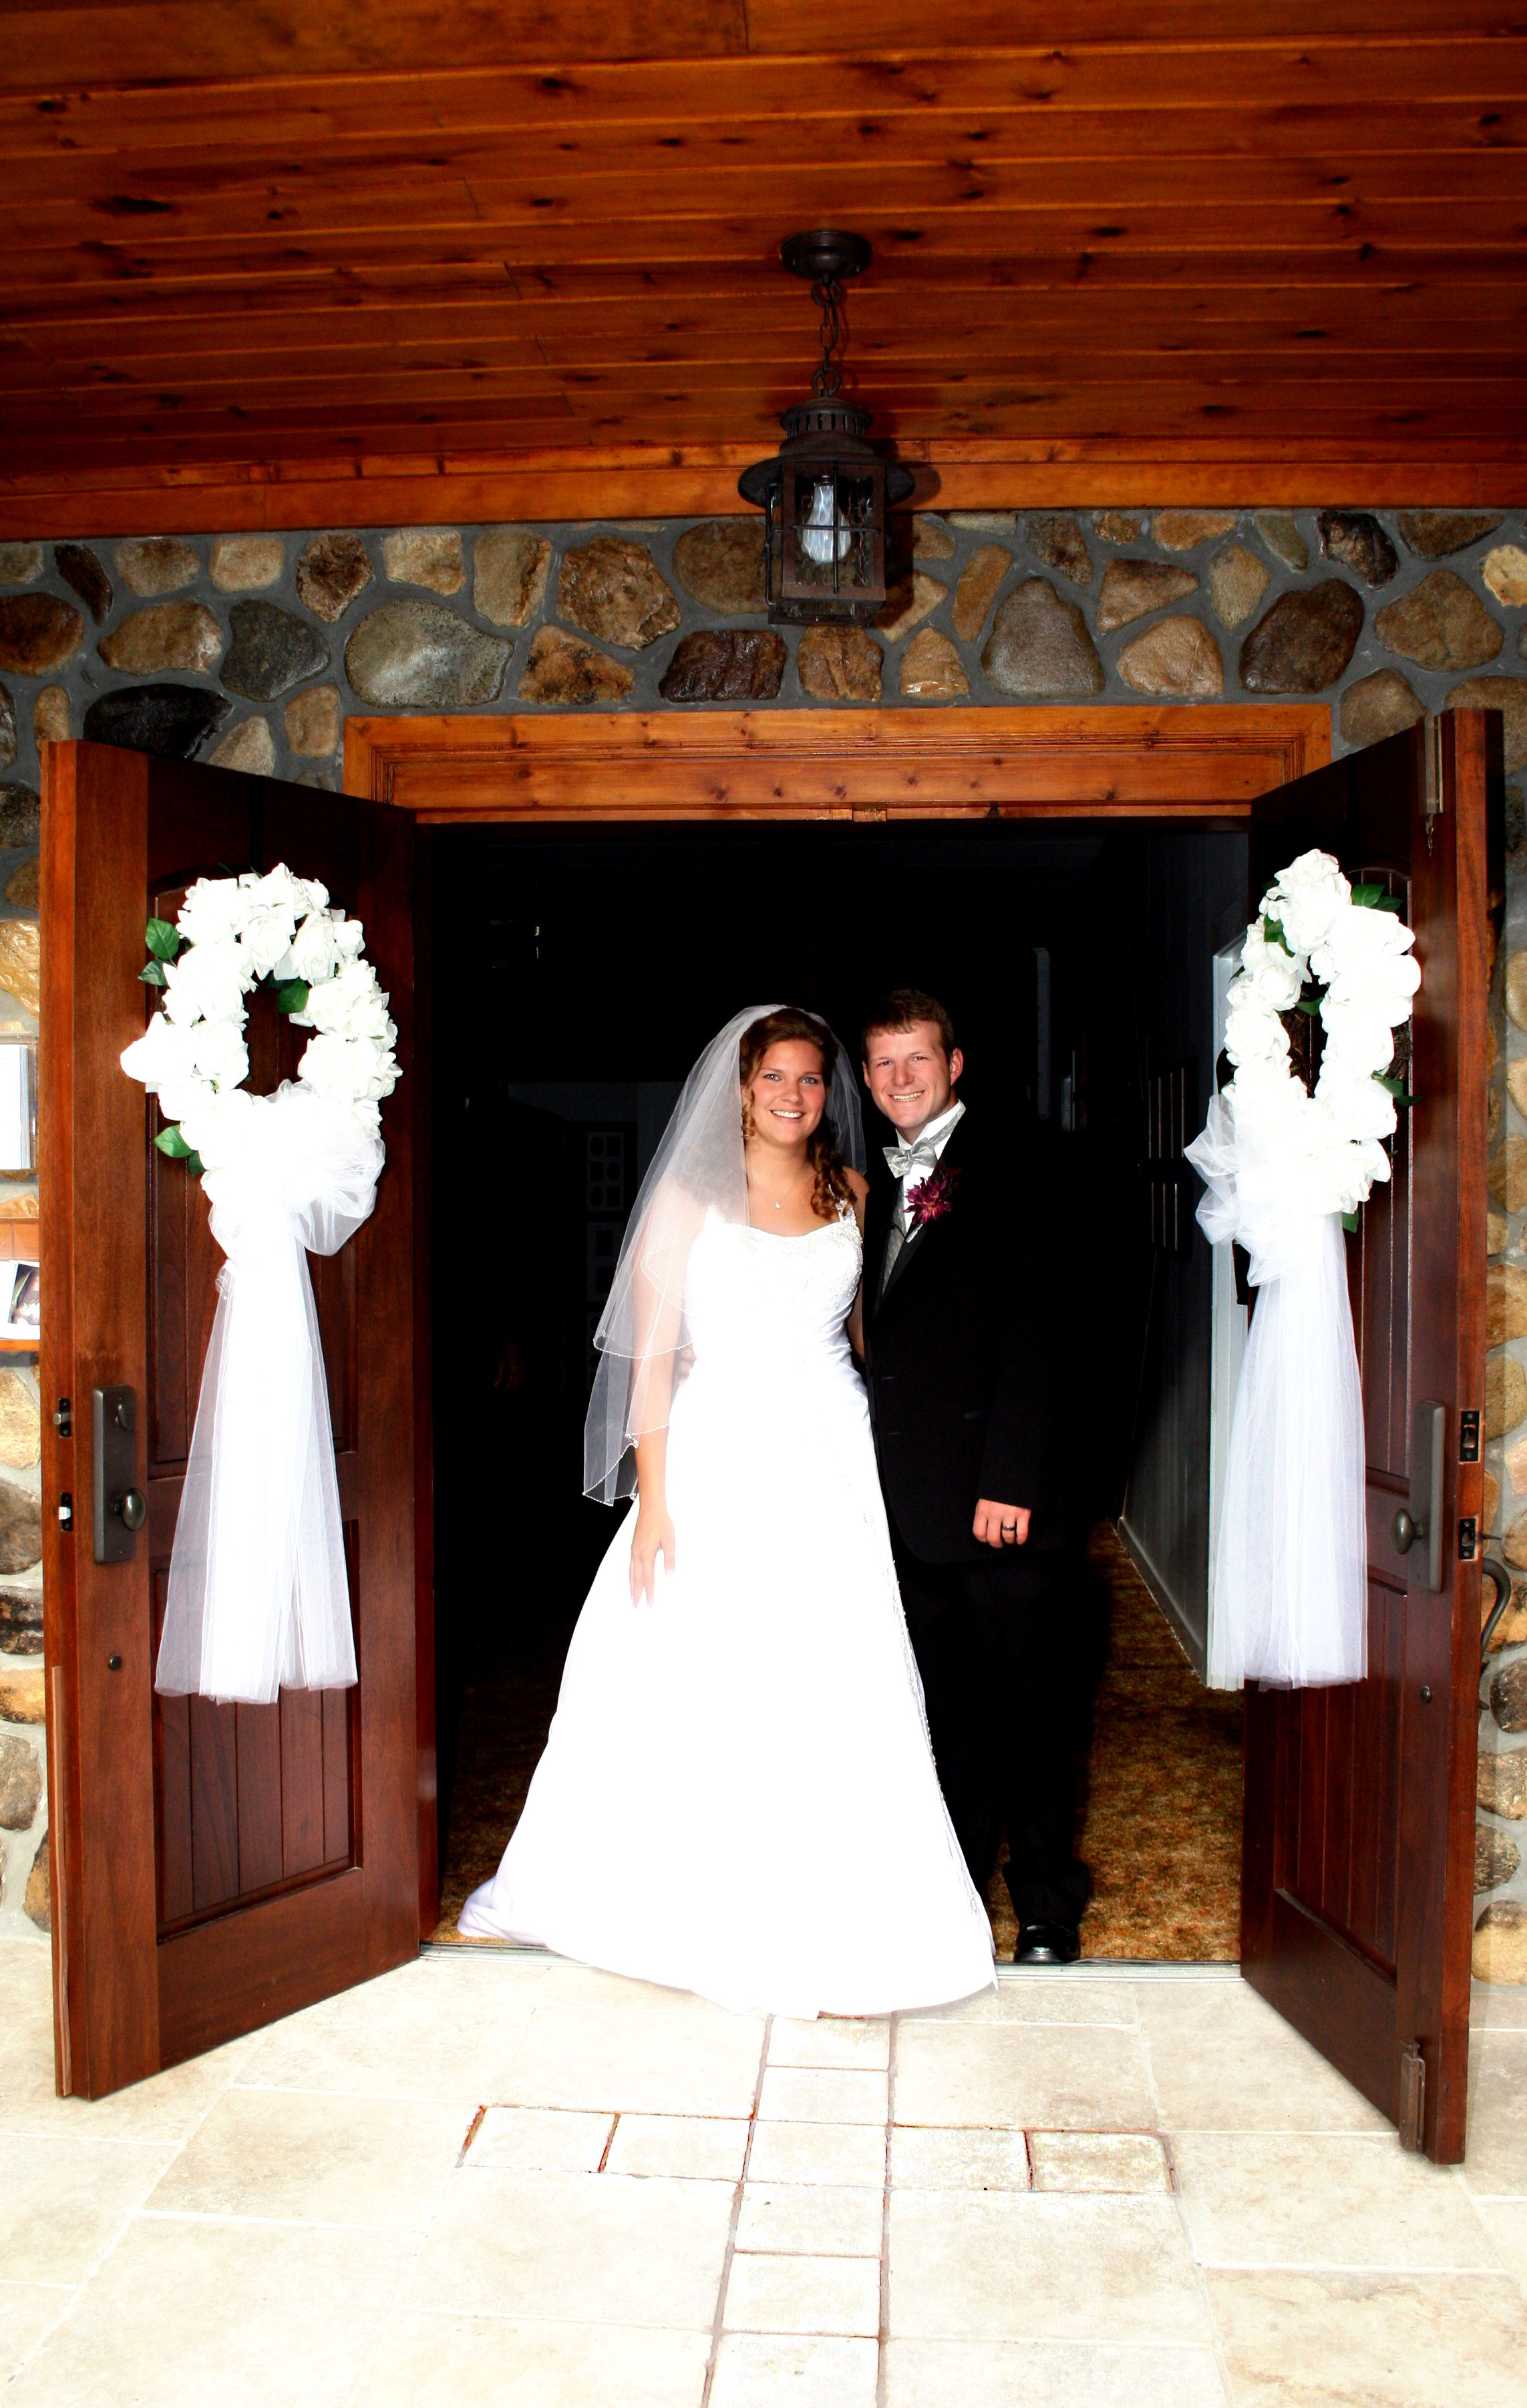 Weddings At Fontana Village Are Spectacular